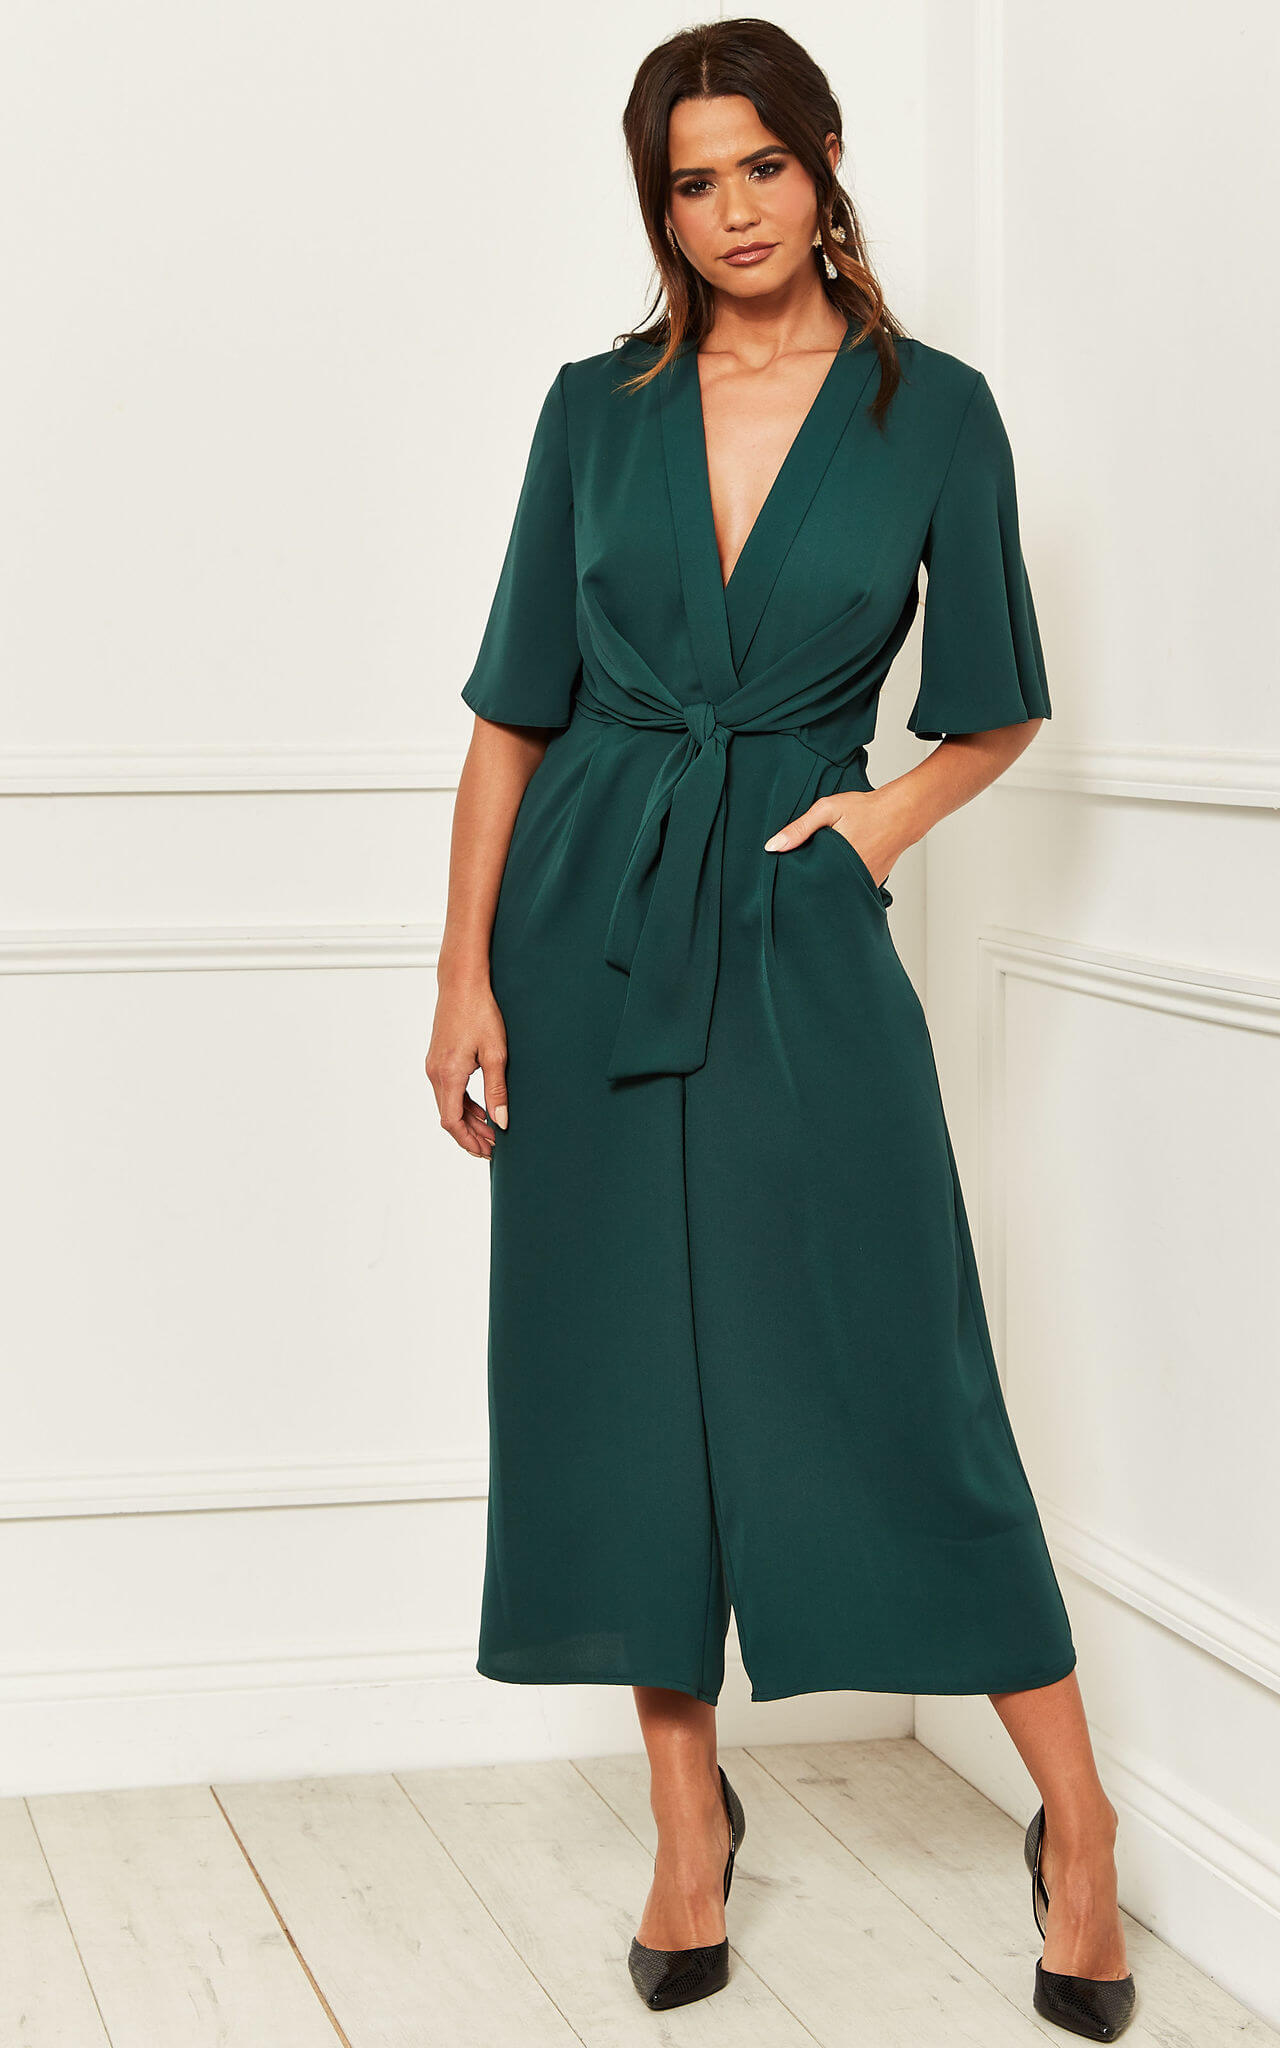 Model wears a green kimono culotte jumpsuit with a knot tie front and black heels